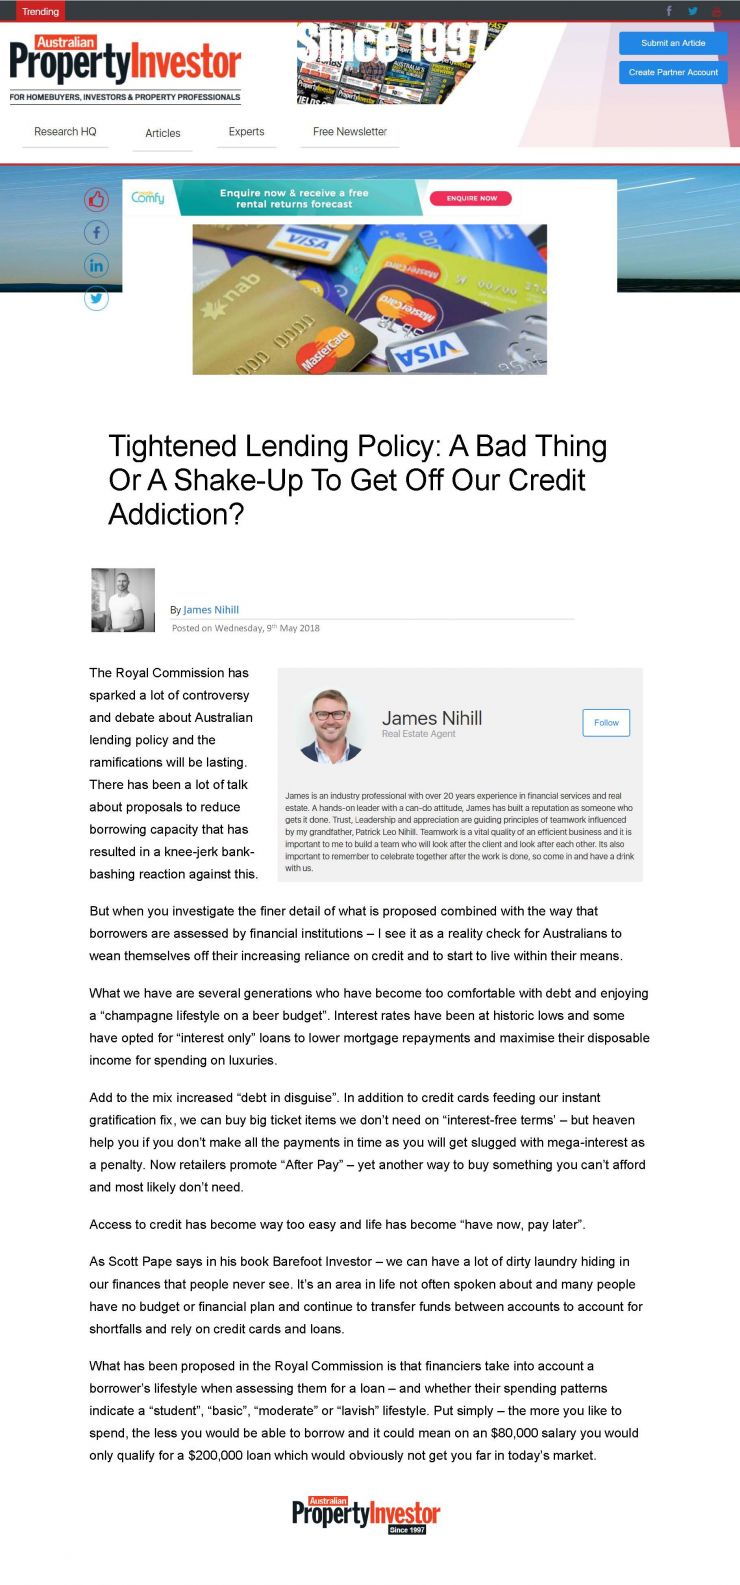 Tightened Lending Policy - A Bad Thing Or A Shake-Up To Get Off Our Credit Addiction.jpg